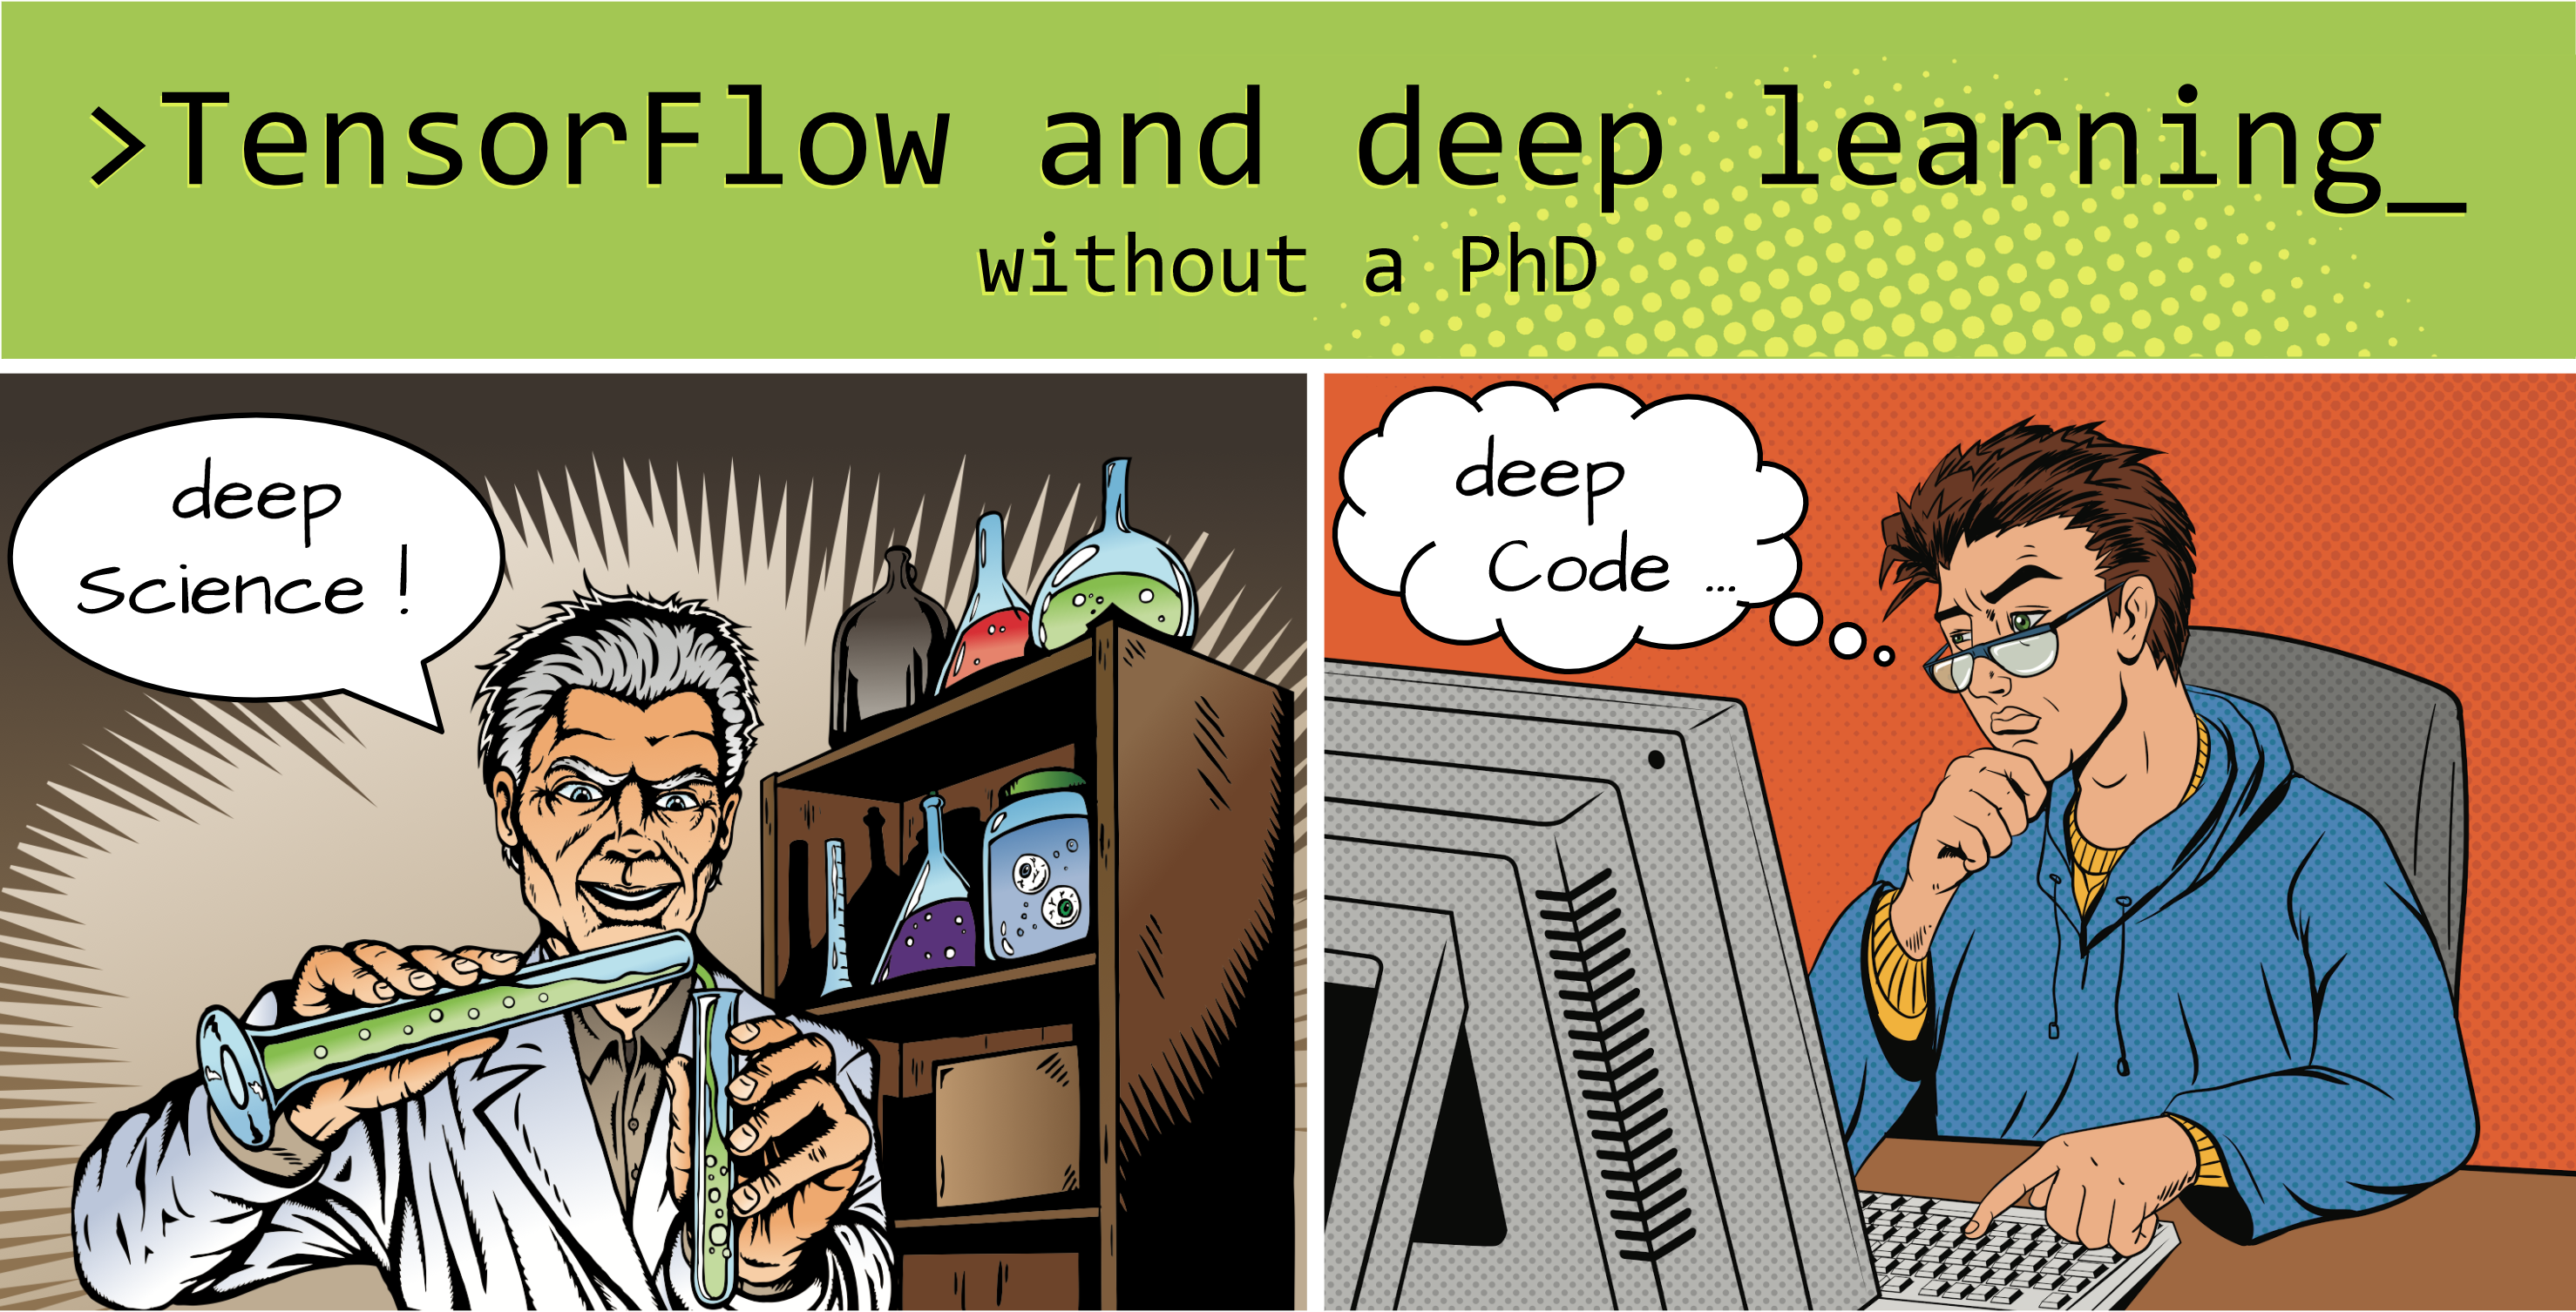 tensorflow-and-deep-learning-cove